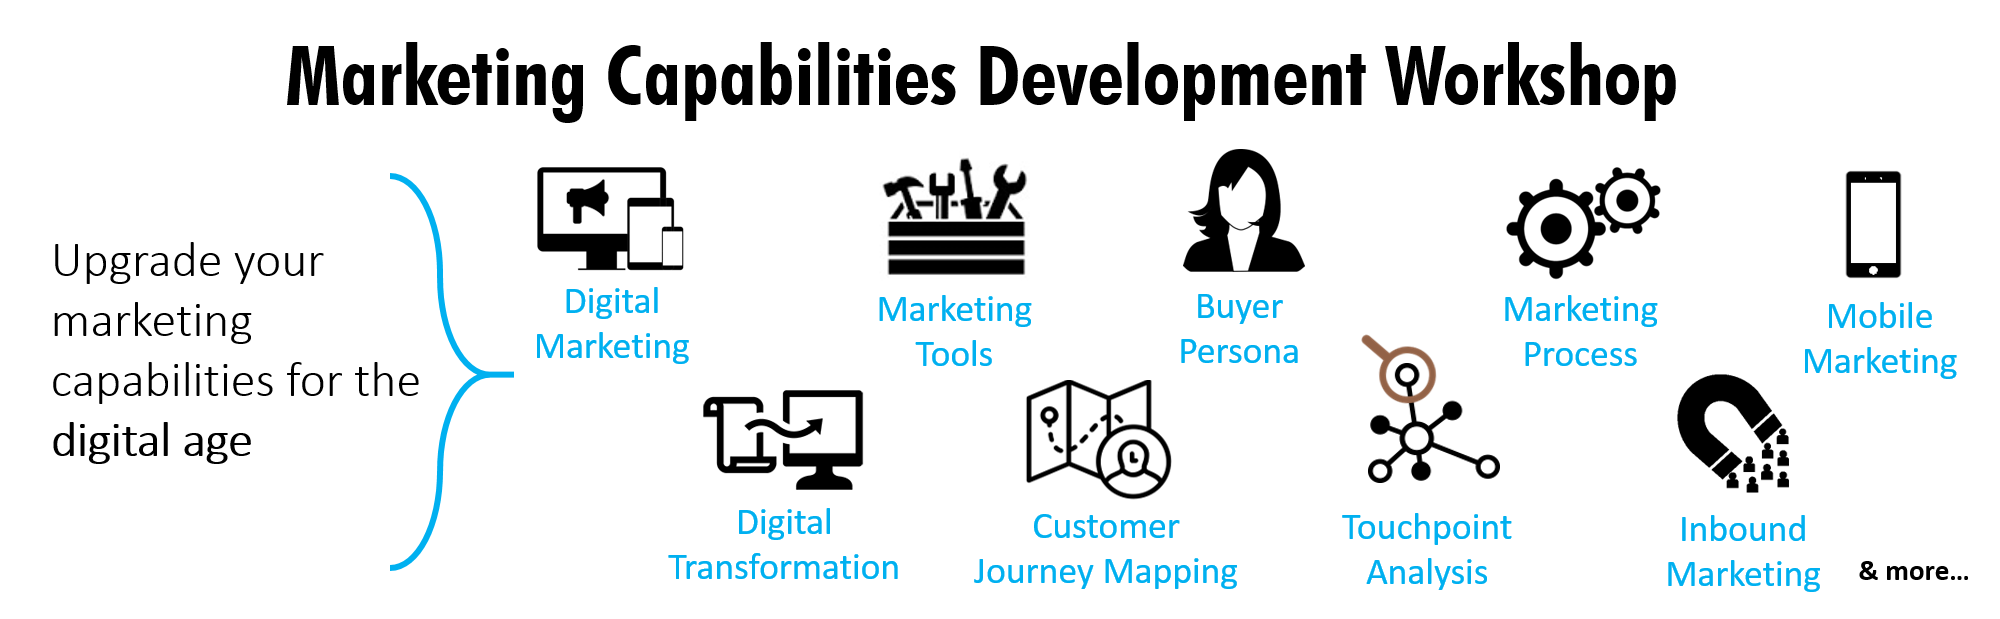 Marketing Capabilities Development Workshop